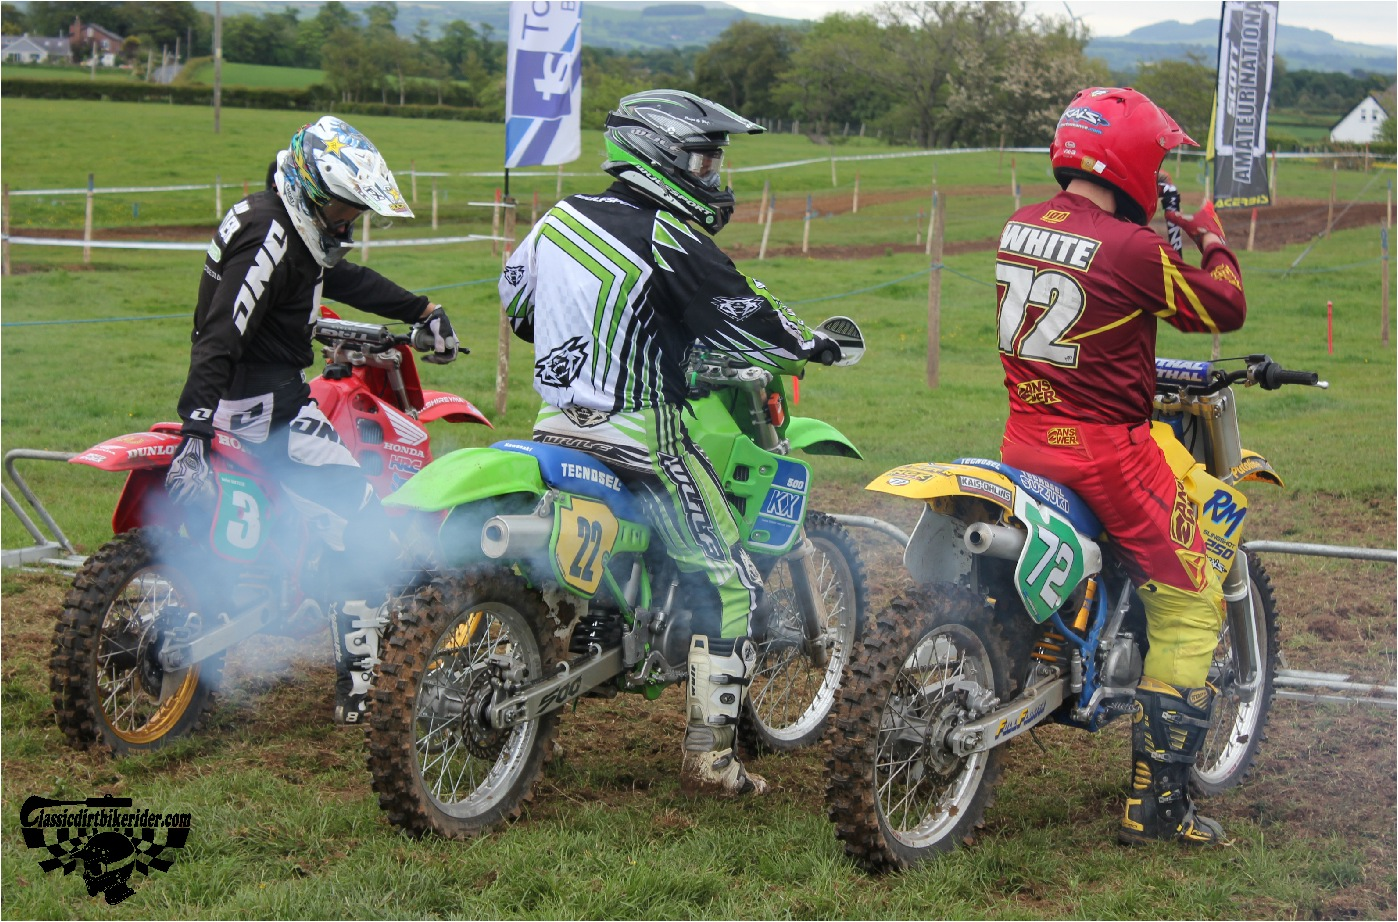 classicdirtbikerider.com-national-twinshock-championship-2015-Garstang-at the start gate ready to race 6